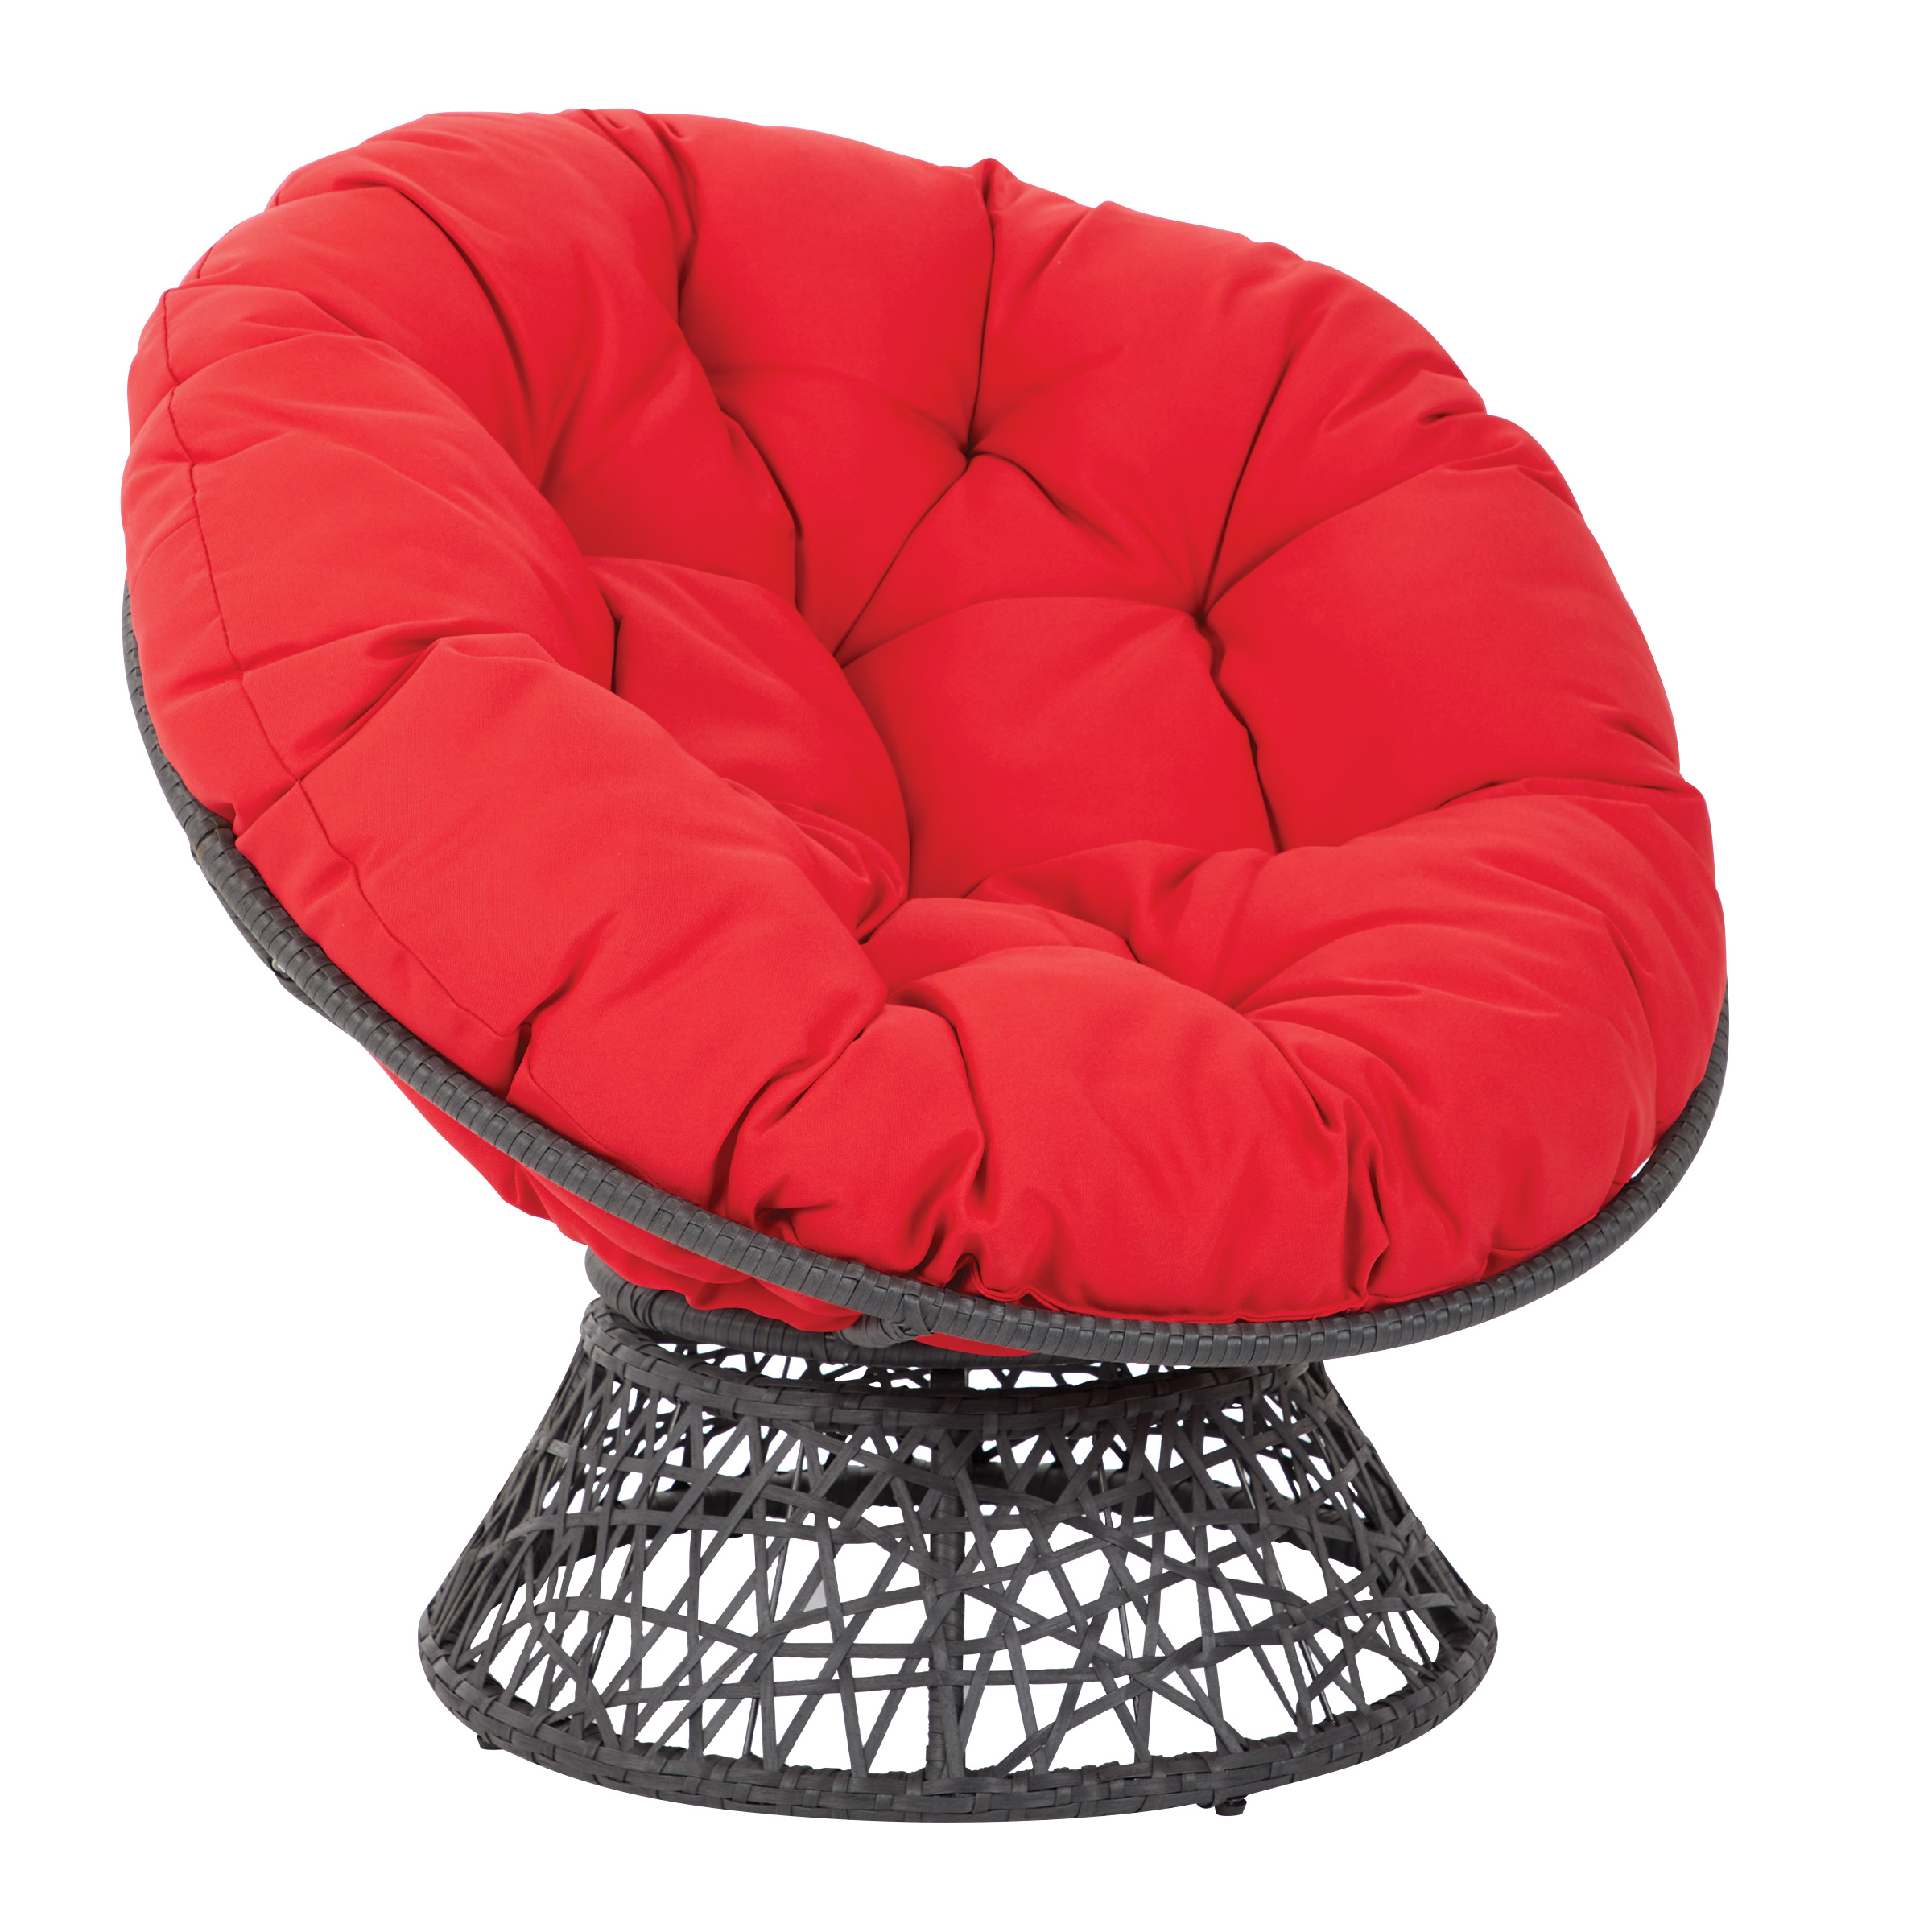 OSP Designs By Office Star Products Papasan Chair With Red Cushion And  Black Frame